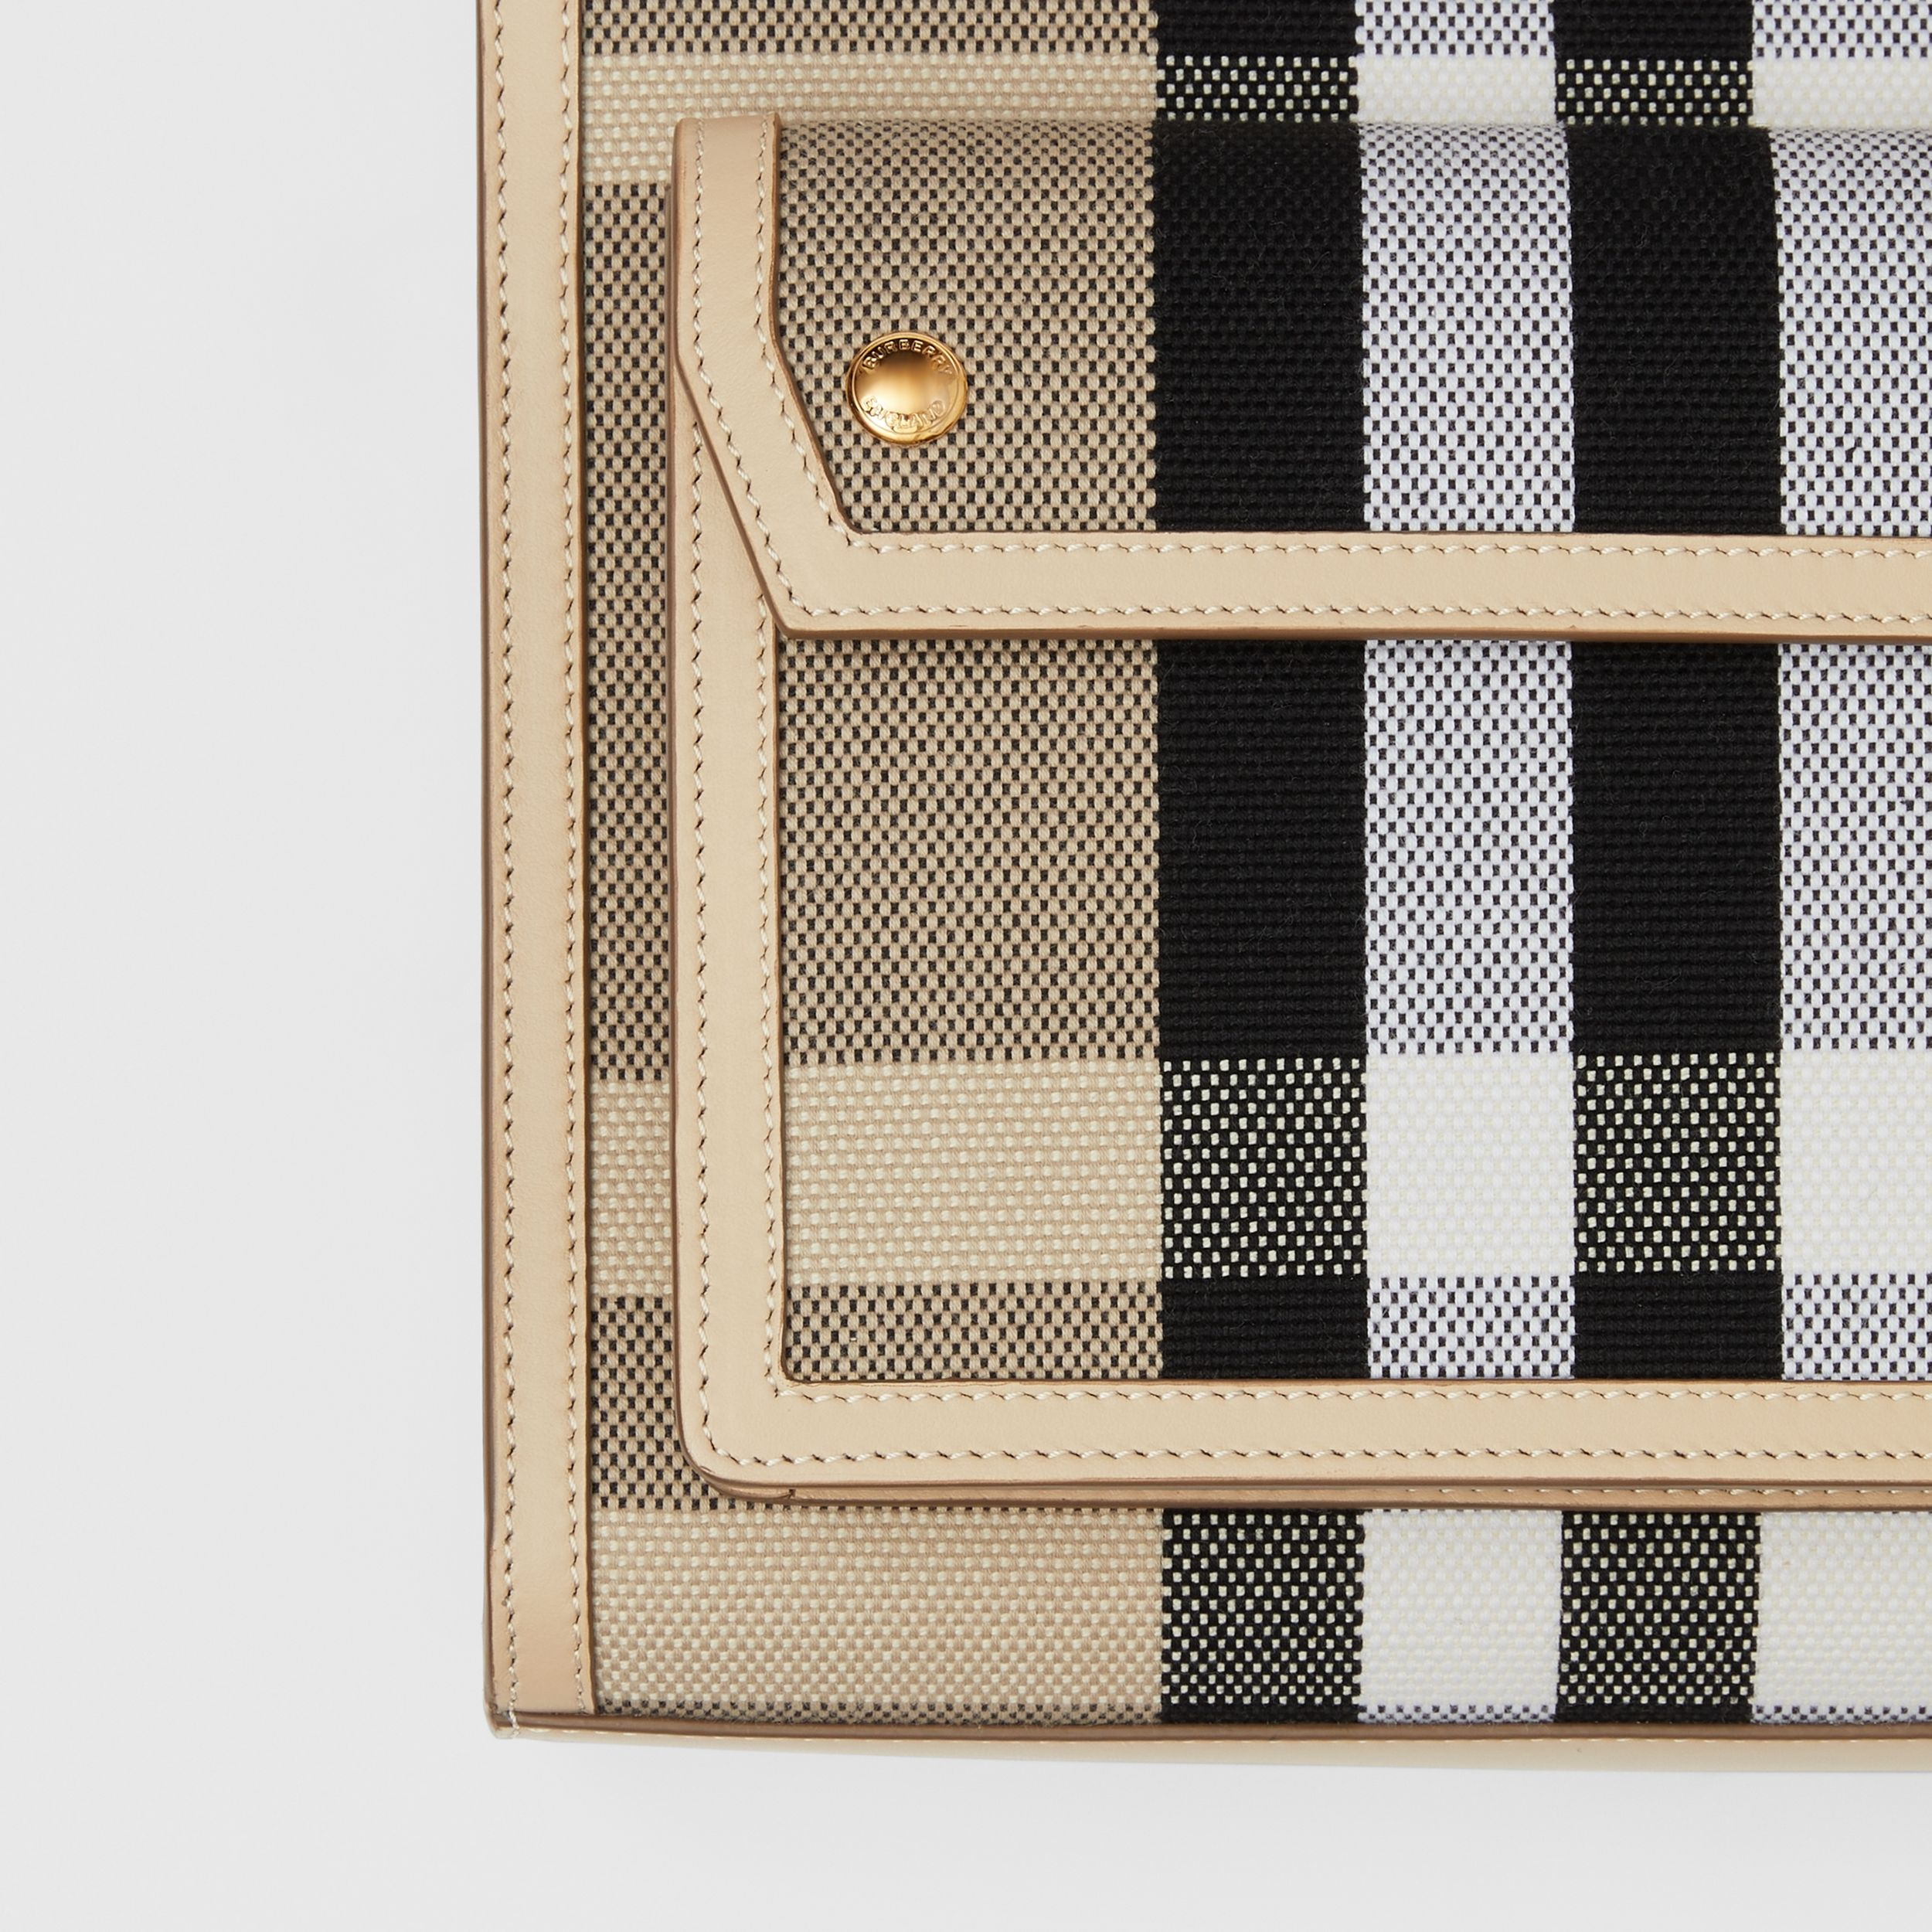 Mini Check Canvas and Leather Pocket Bag in Dusty Sand/soft Fawn - Women | Burberry - 2